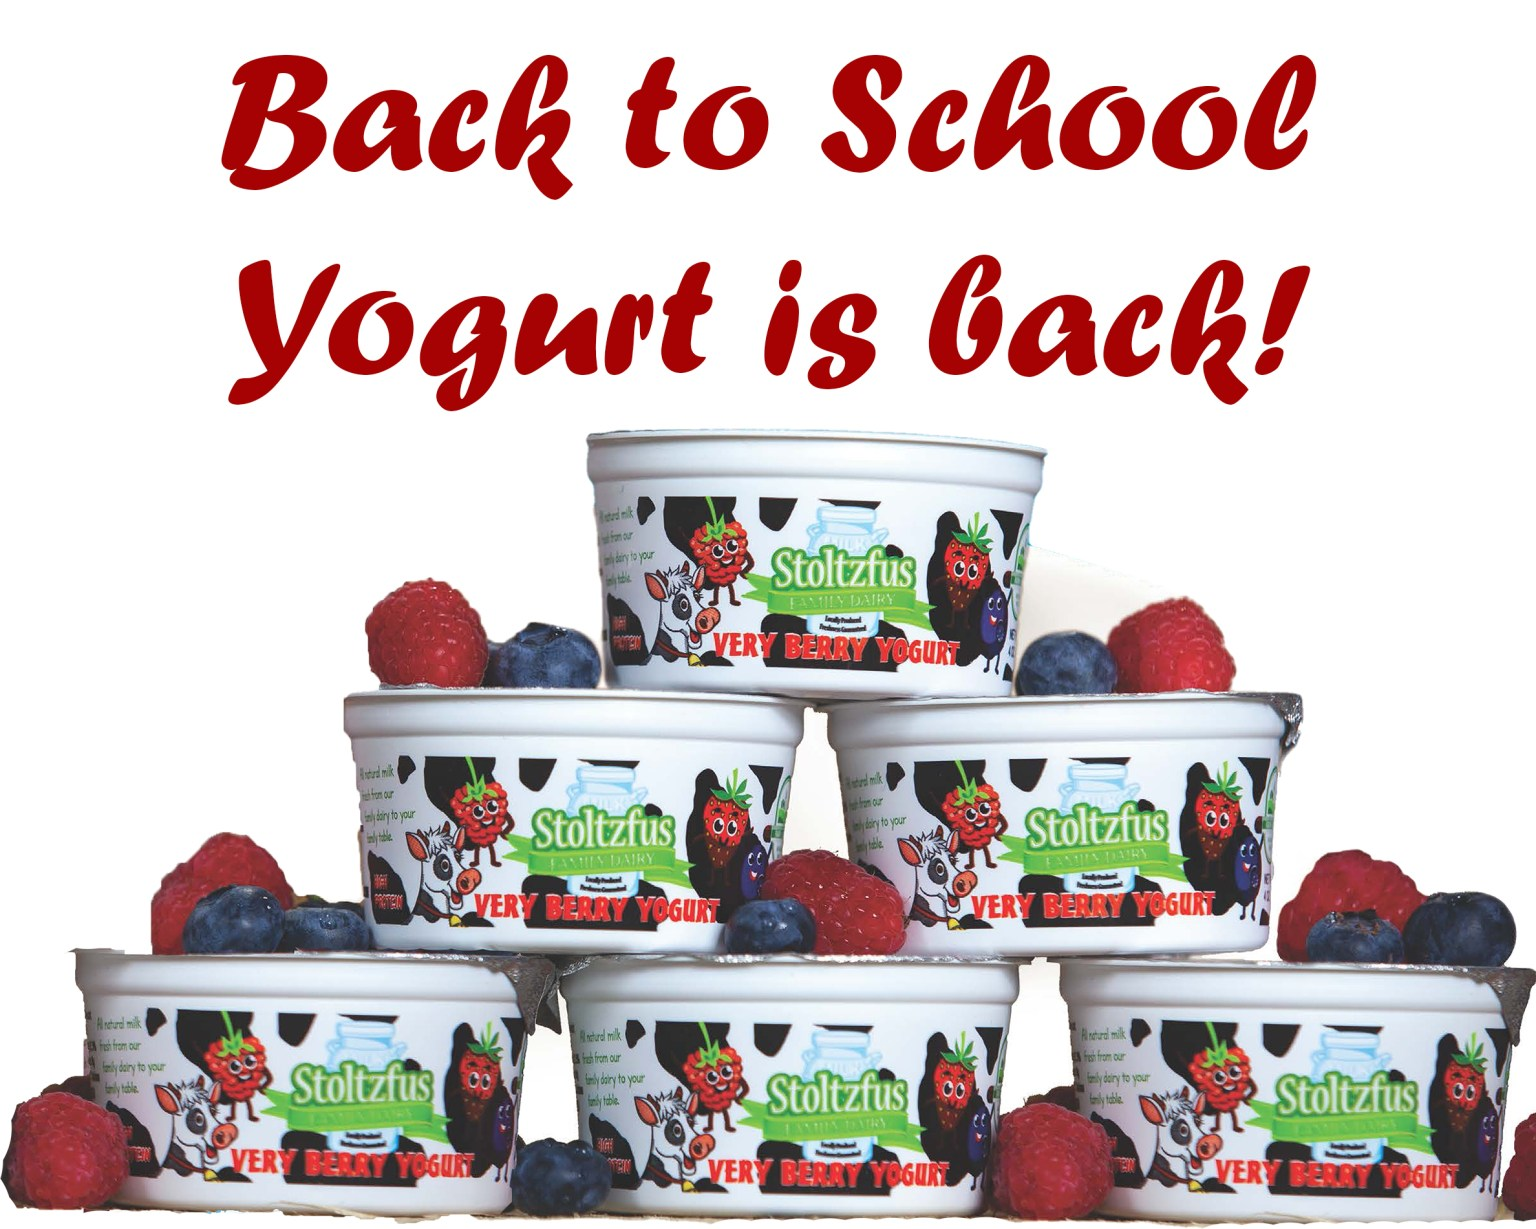 Back to School Yogurt is Available Again!